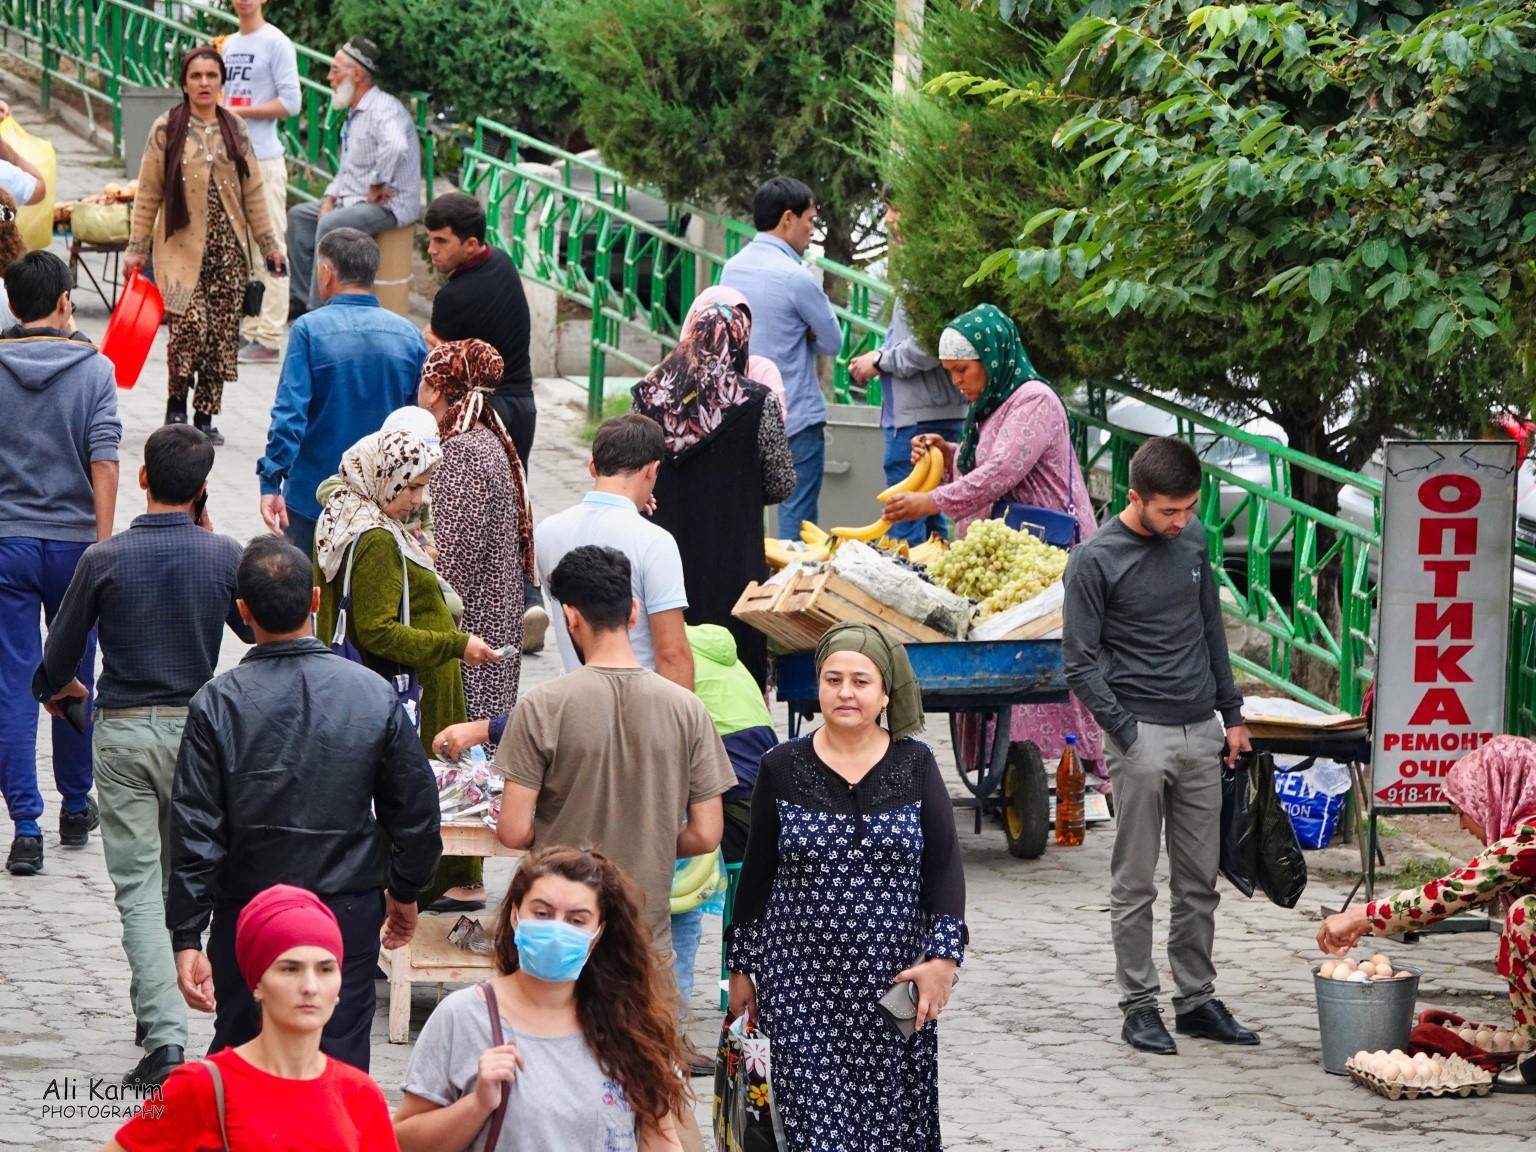 More Dushanbe, Tajikistan Bananas were imported from Equador. And face masks were uncommon as this was pre-Covid time